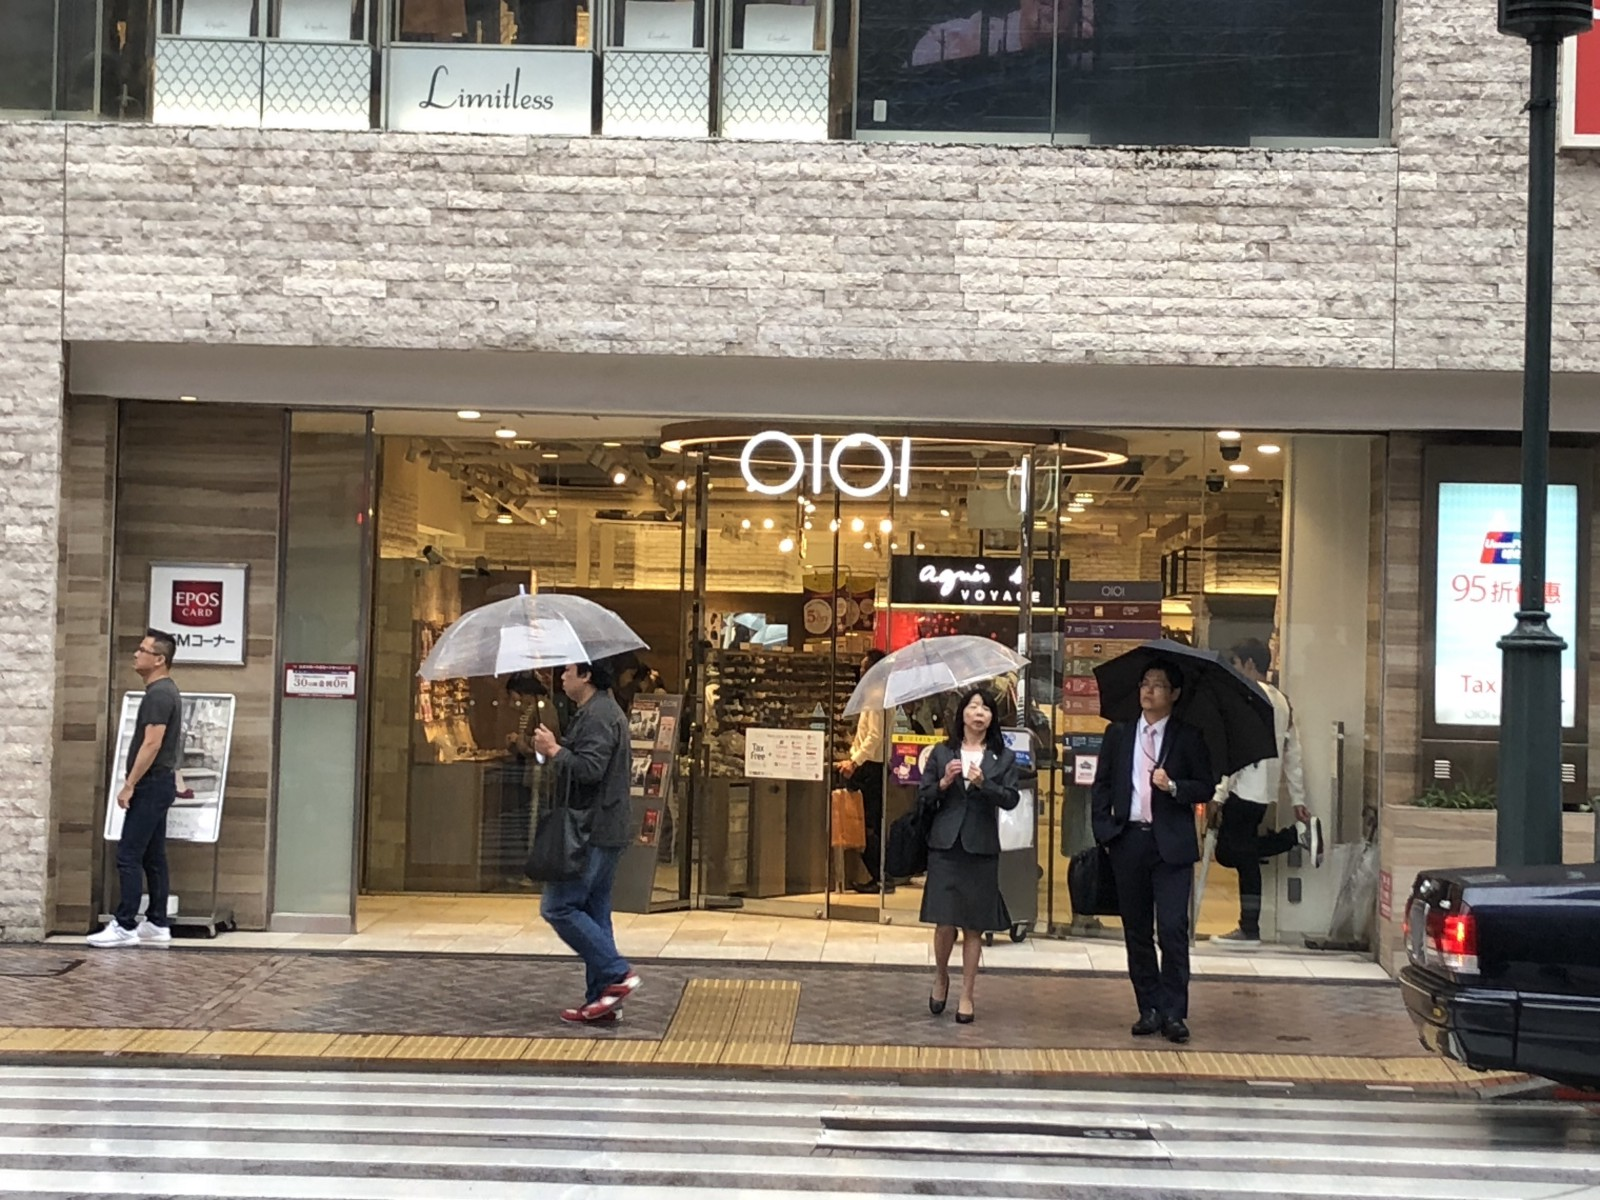 The entrance of OIOI Shibuya store